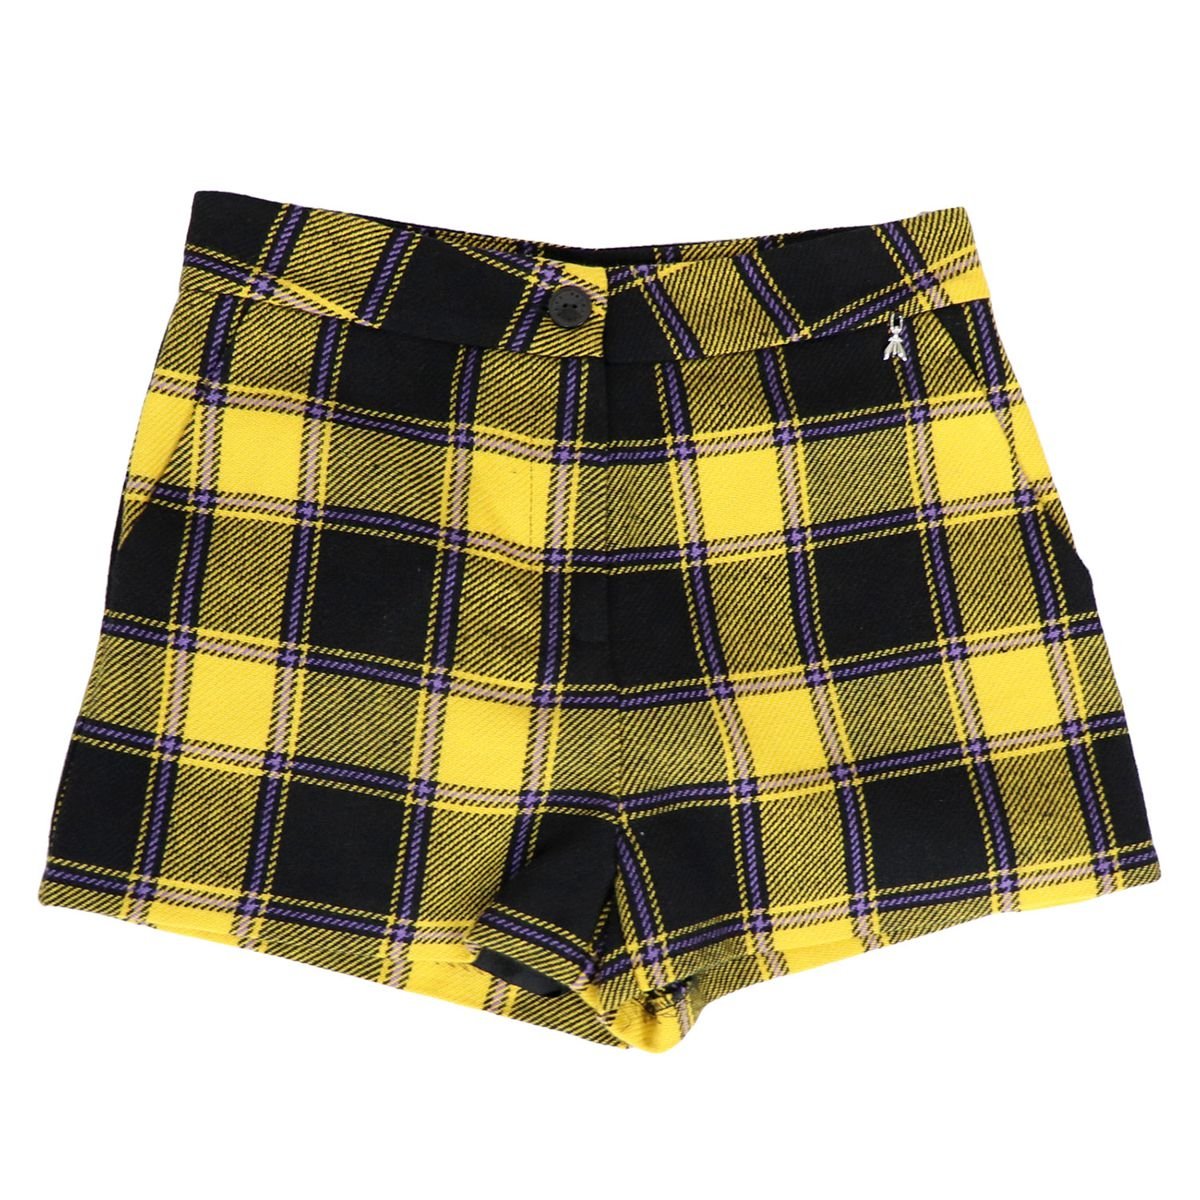 Madras patterned wool blend short Black / yellow Patrizia Pepe